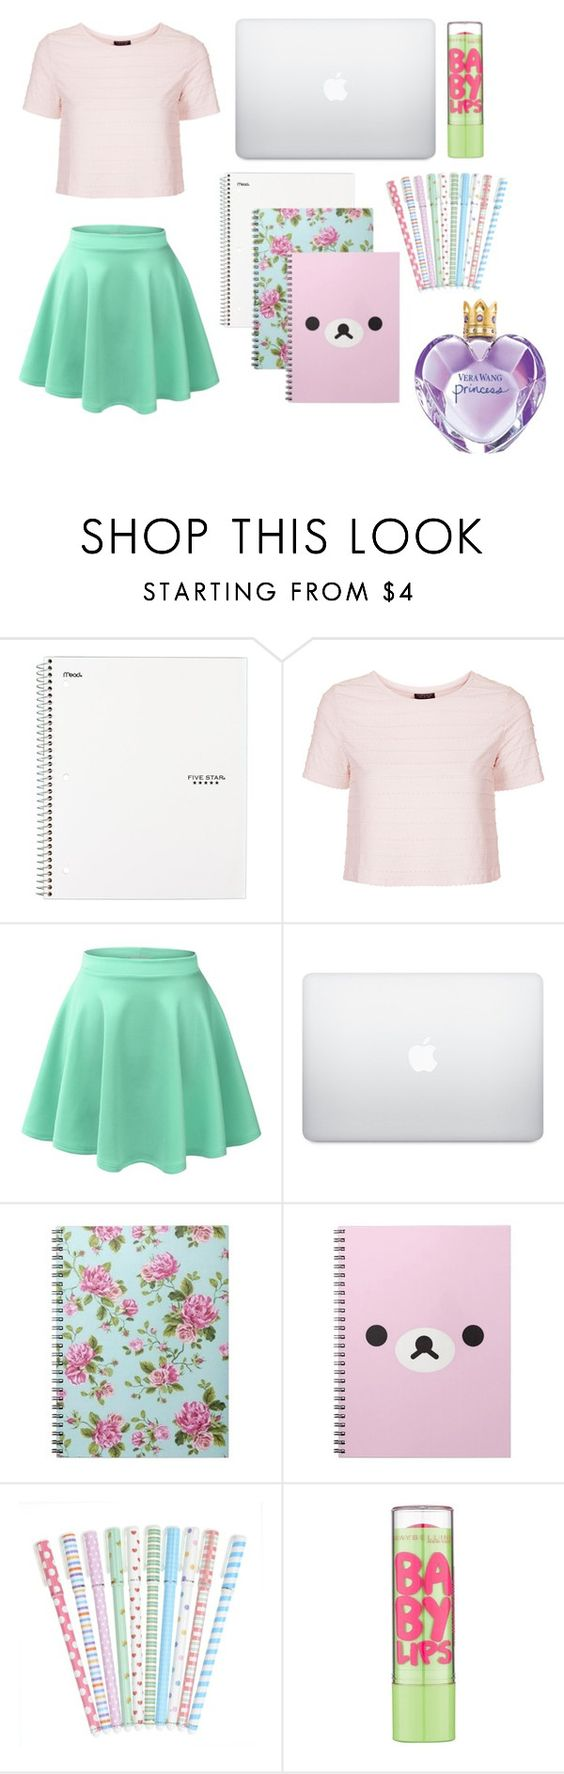 """""""green"""" by evkmob ❤ liked on Polyvore featuring Topshop, LE3NO, Maybelline and Vera Wang"""